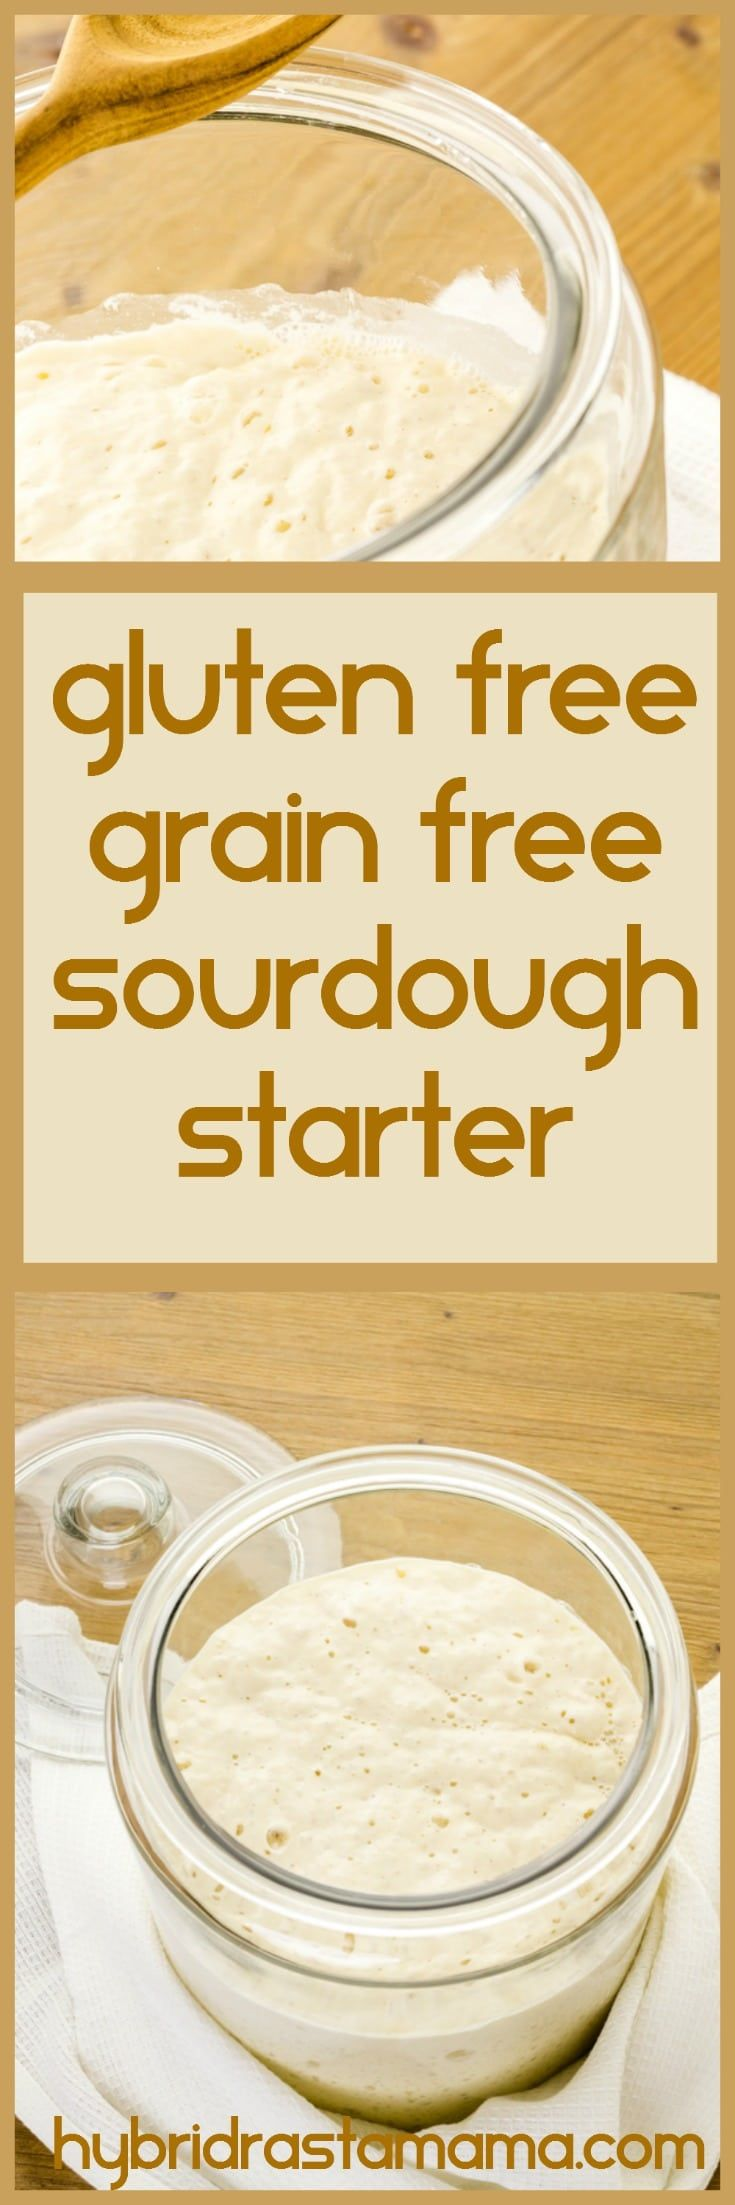 This Gluten Free, Grain Free Sourdough Starter is so easy anyone can make it. Plus it makes the perfect base for gluten free, grain free sourdough bread. Grab the recipe from HybridRastaMama.com